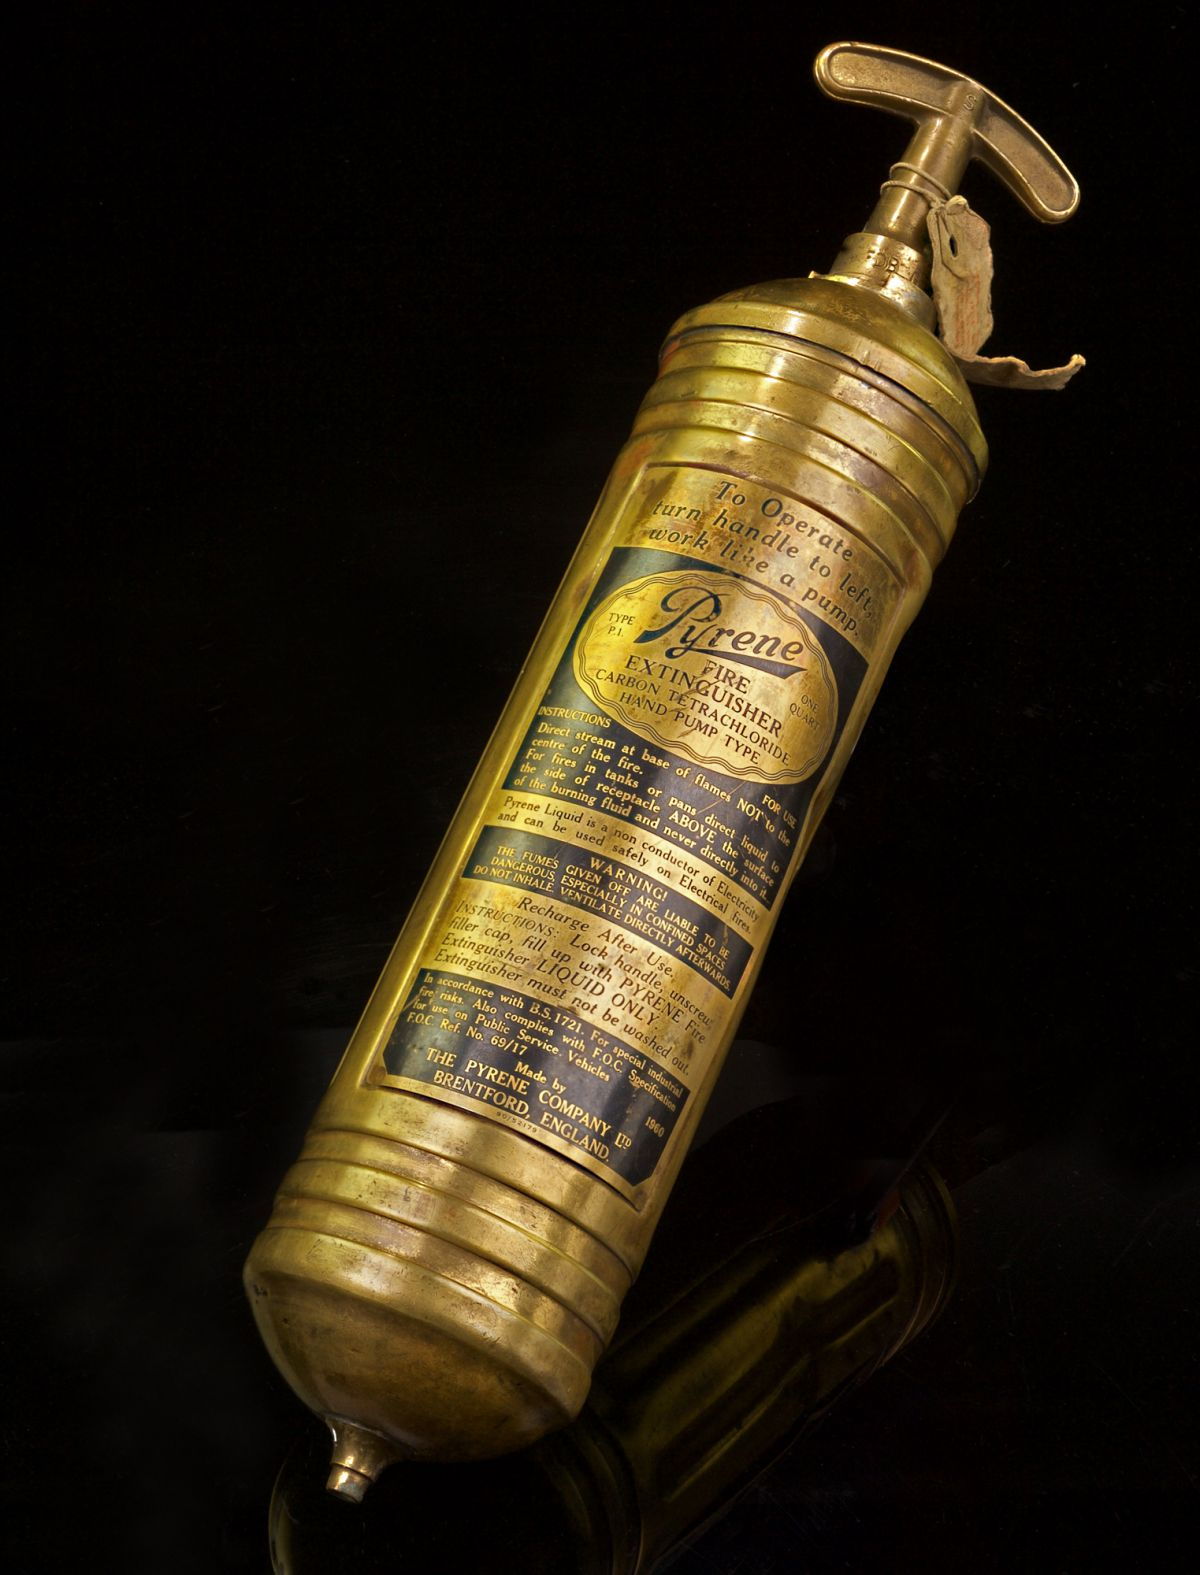 LATER PRODUCTION RUN MODEL OF THE PYRENE TYPE P-1 PORTABLE FIRE EXTINGUISHER AS USED ABOARD THE AVRO LANCASTER